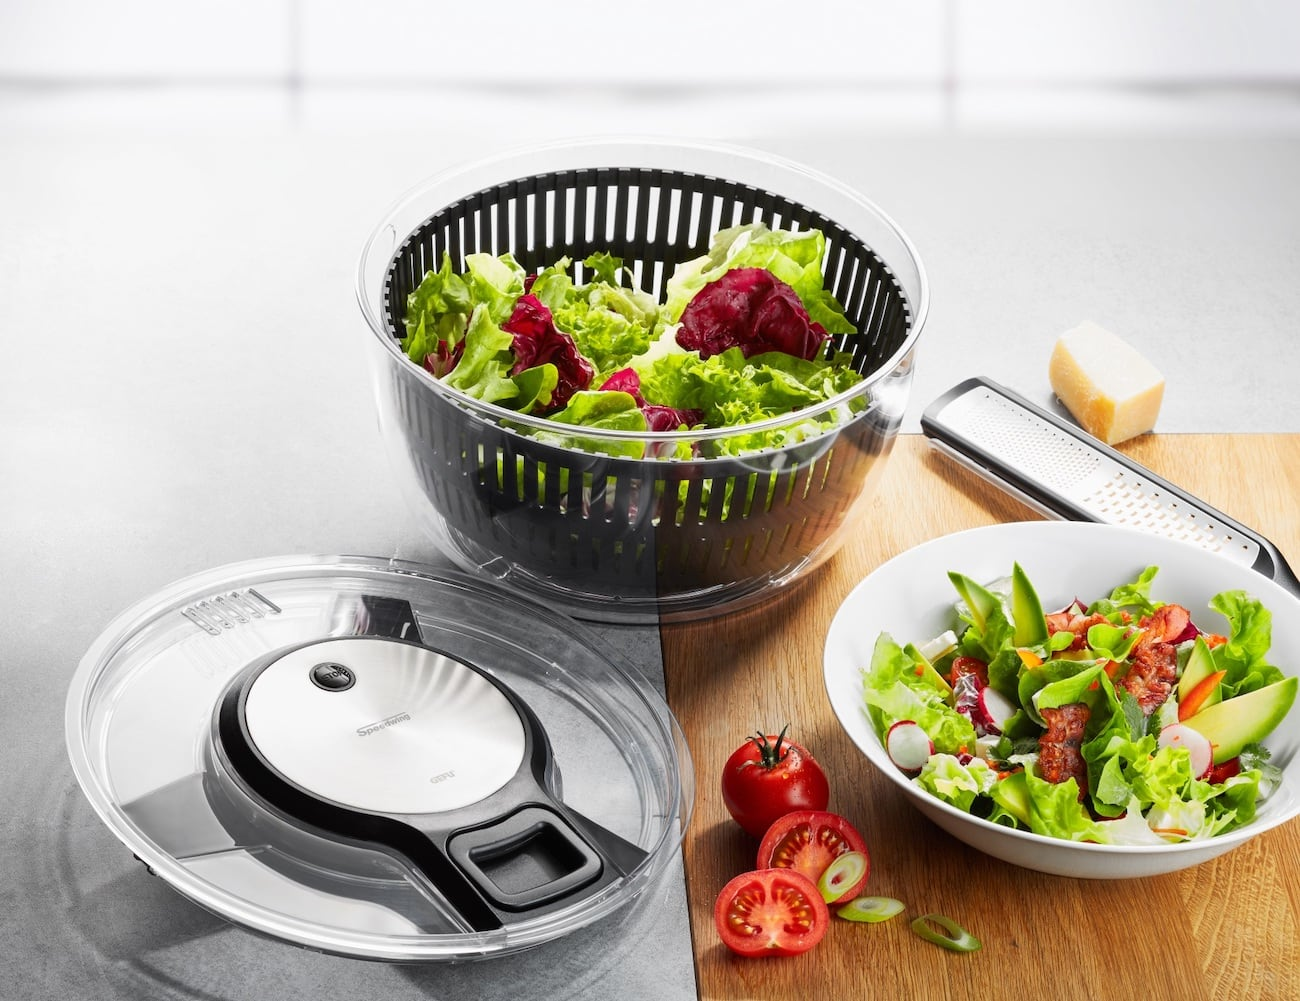 GEFU Speedwing Cable Pull Salad Spinner